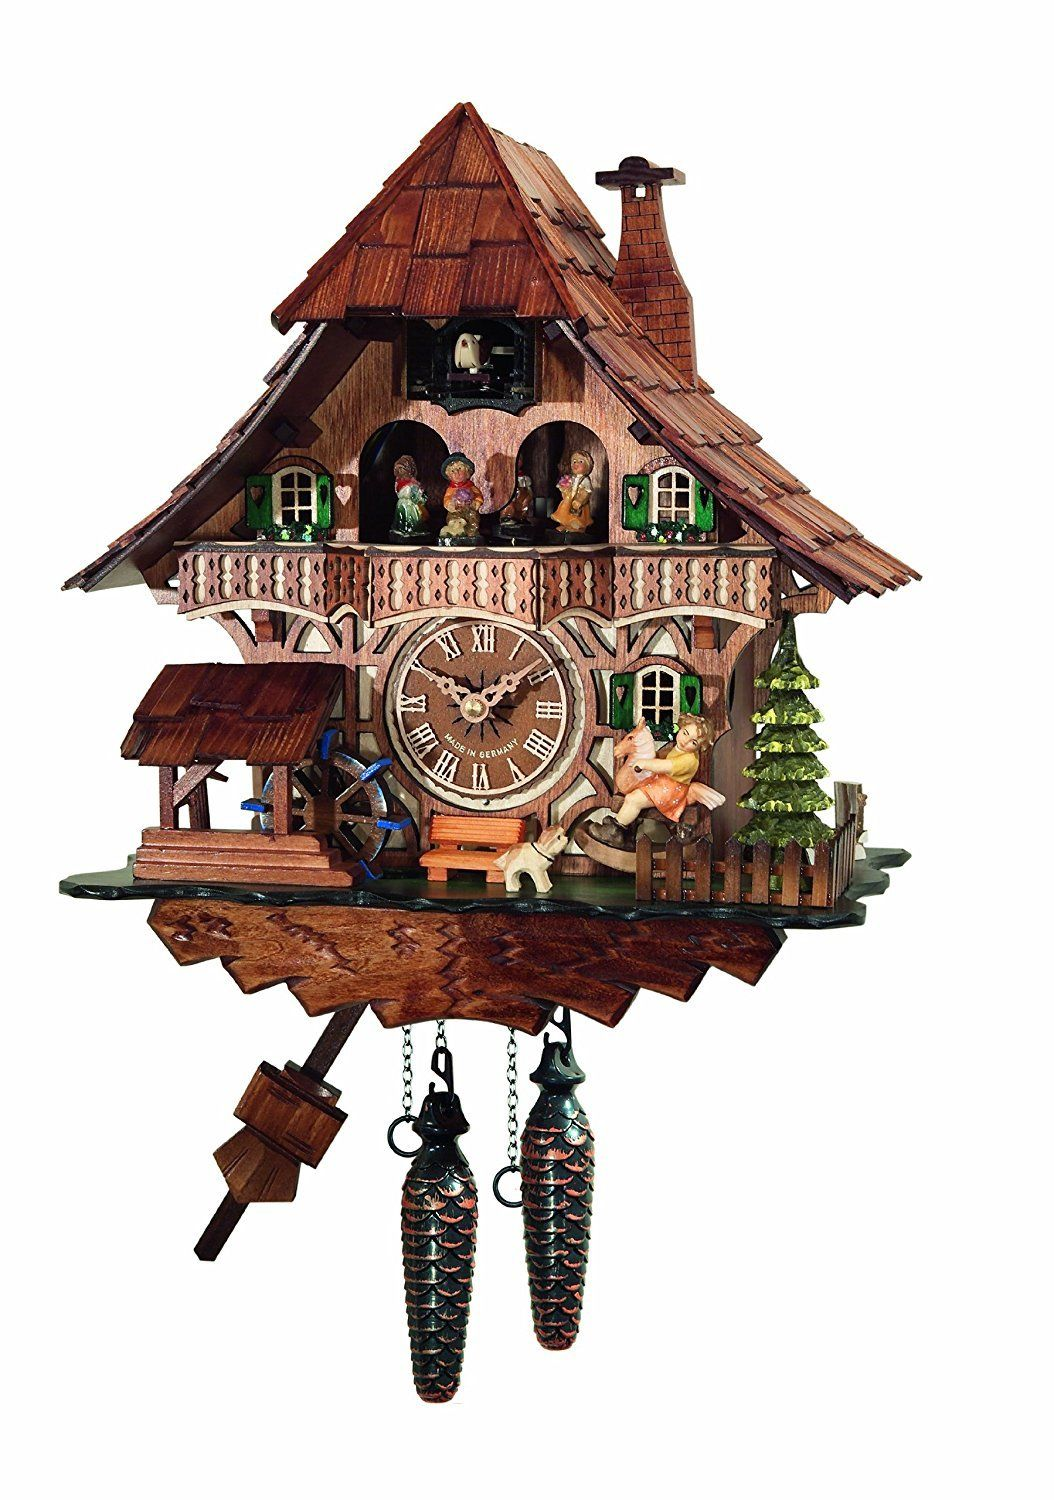 Made In Germany Warranty 2 Years 100 Authentic Black Forest Premium Clock By Engstler E K Schwarzwalduhren Cuckoo Palace Premium Shop This In 2020 Cuckoo Clock